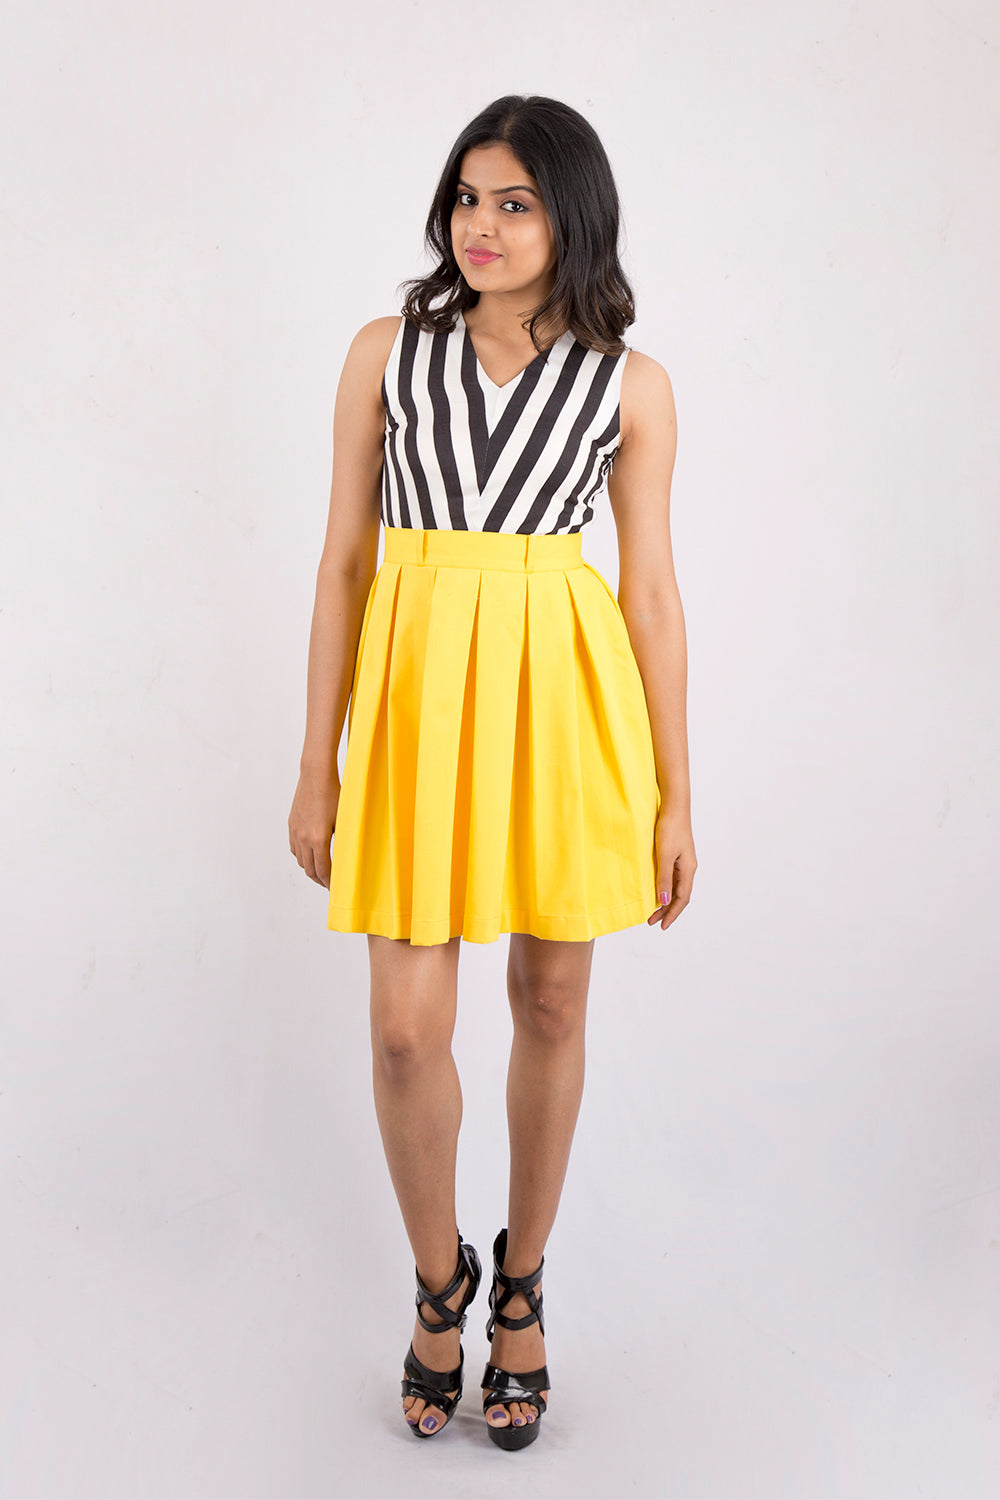 Stripes and Yellow Dress